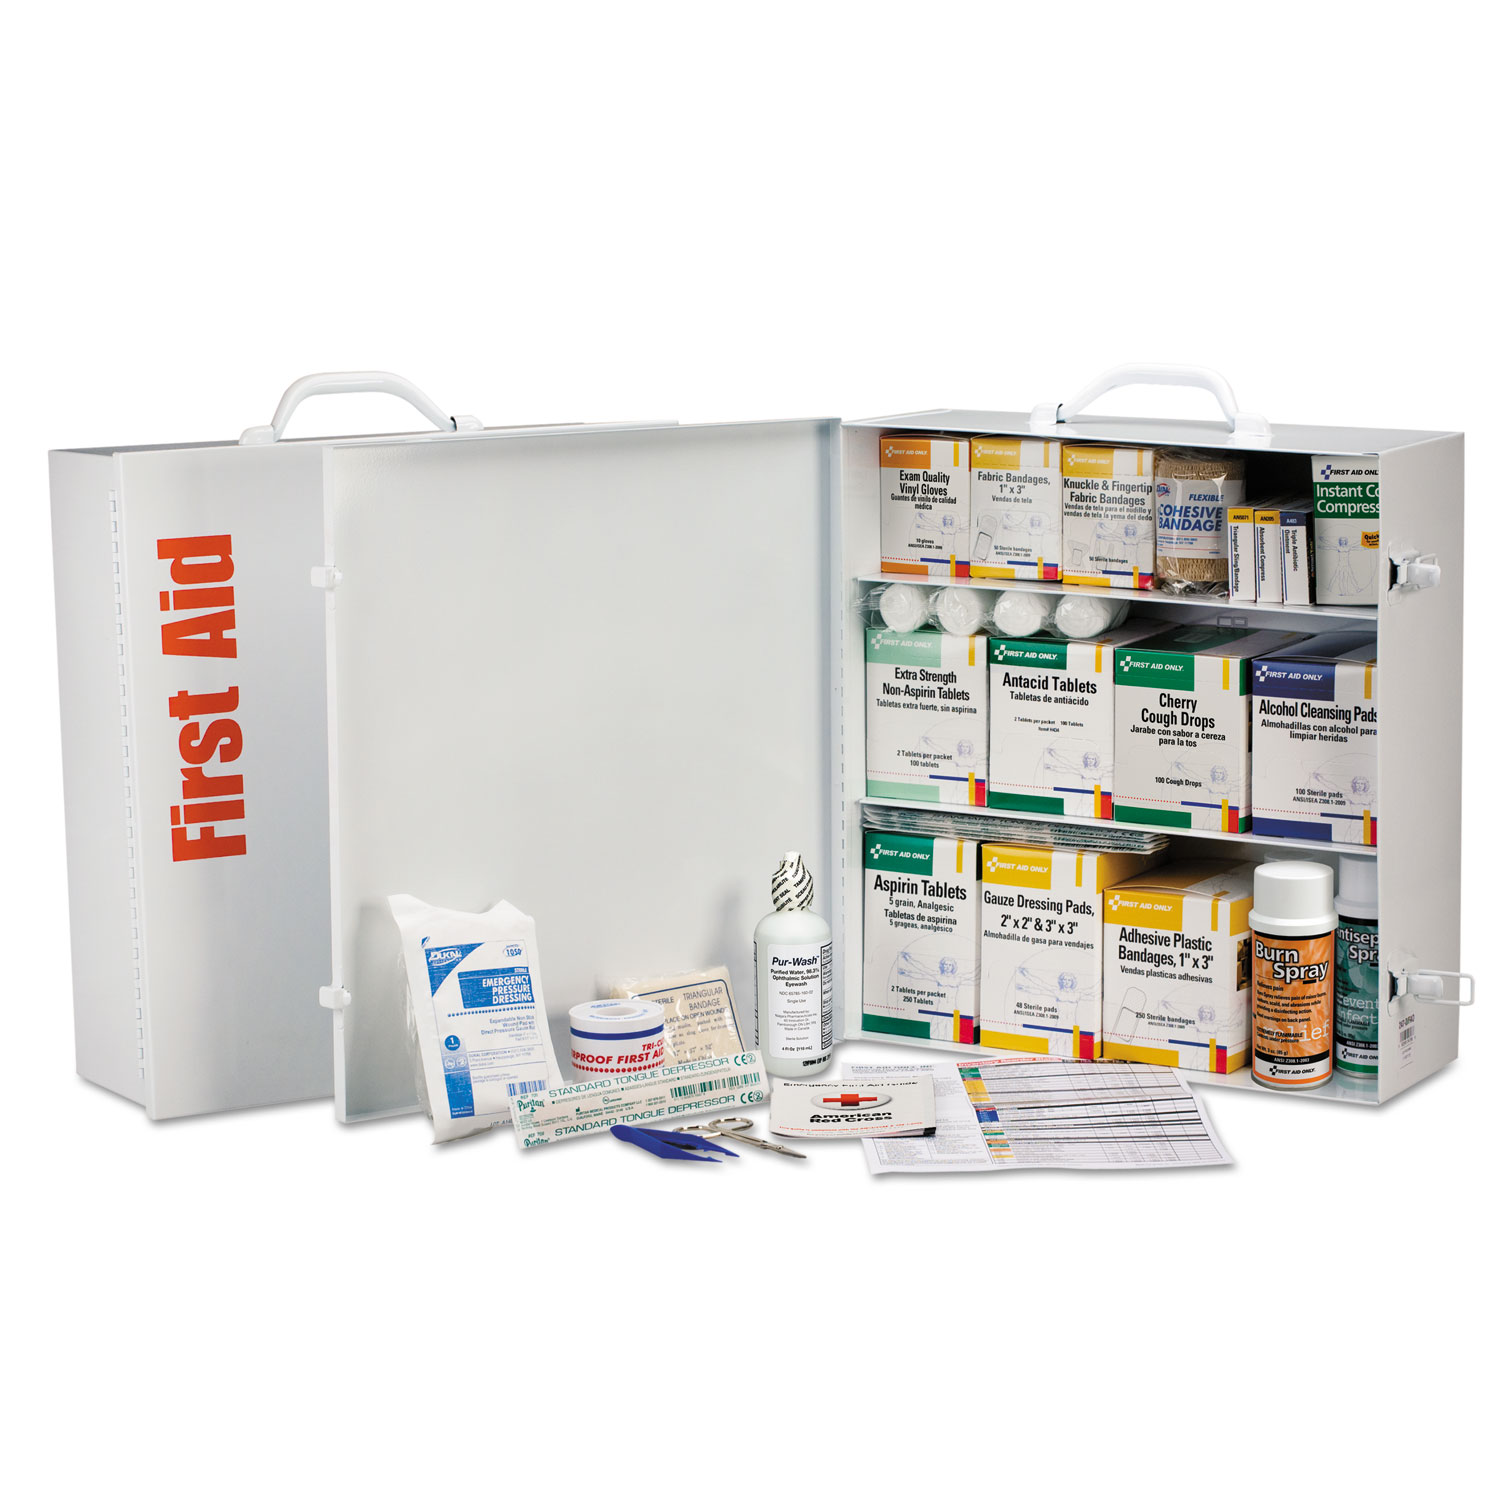 Industrial First Aid Station for 100 People, 1092-Pieces, OSHA, Metal Case by ACME UNITED CORPORATION